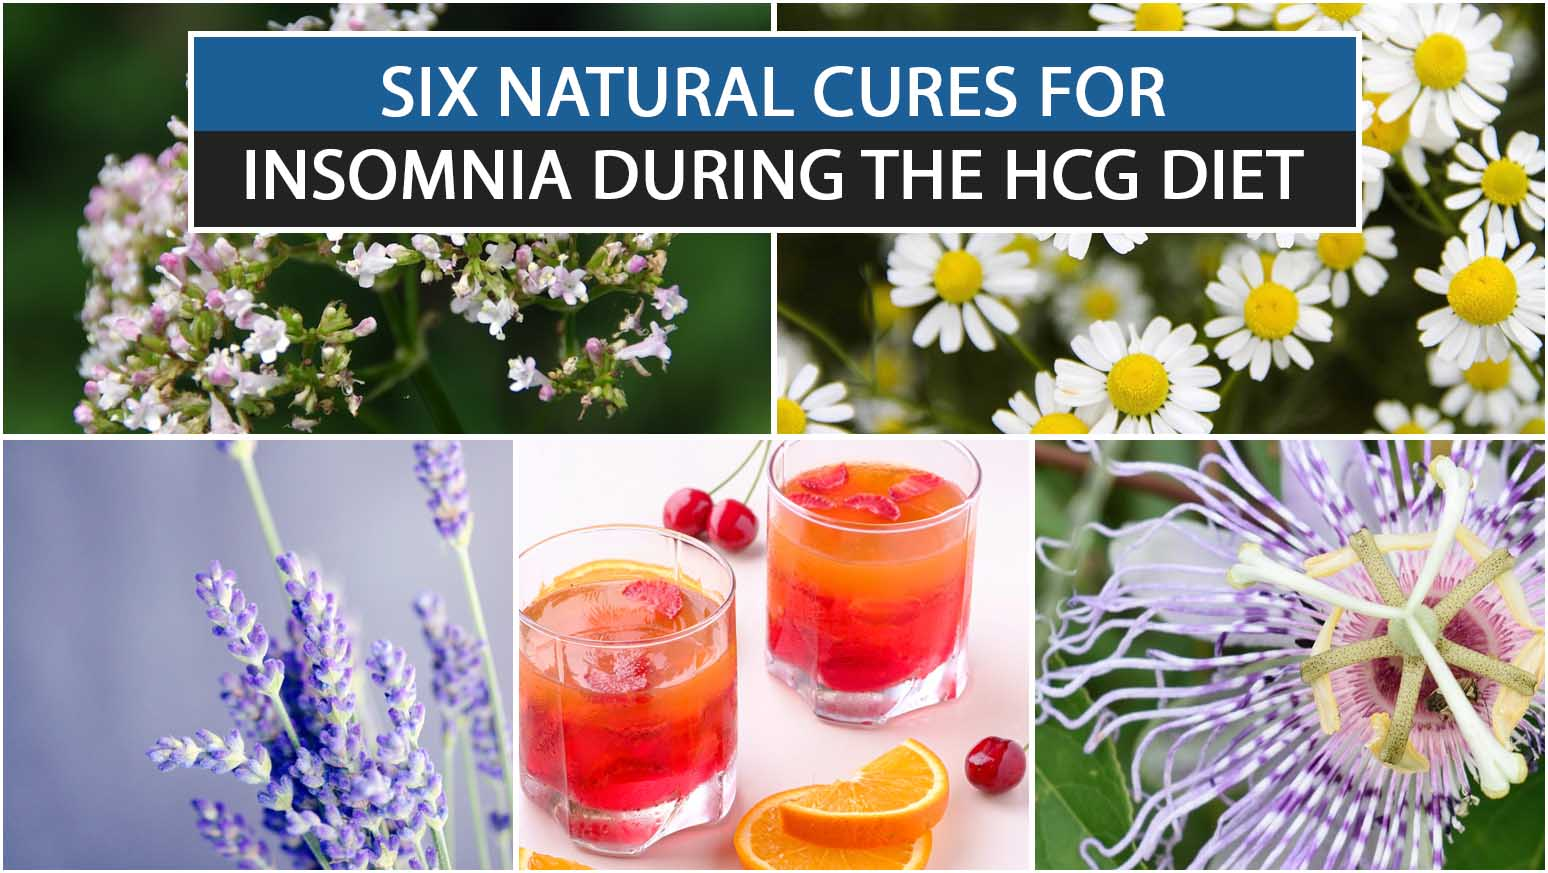 SIX NATURAL CURES FOR INSOMNIA DURING THE HCG DIET